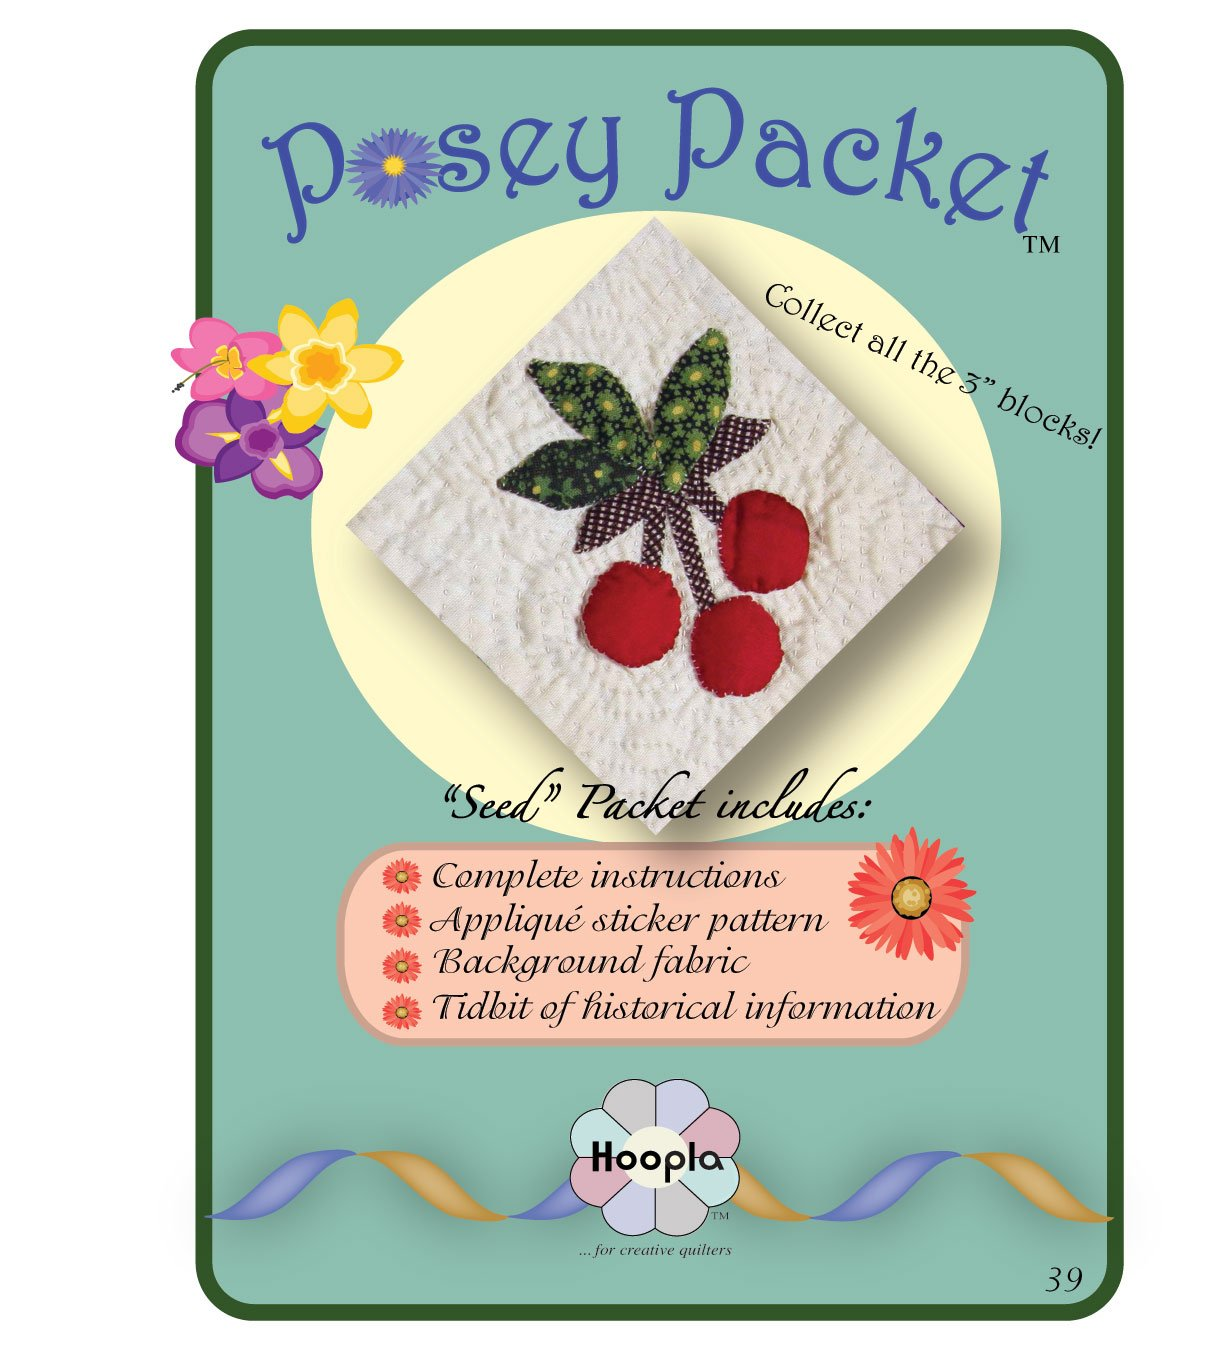 Posey Packet 27